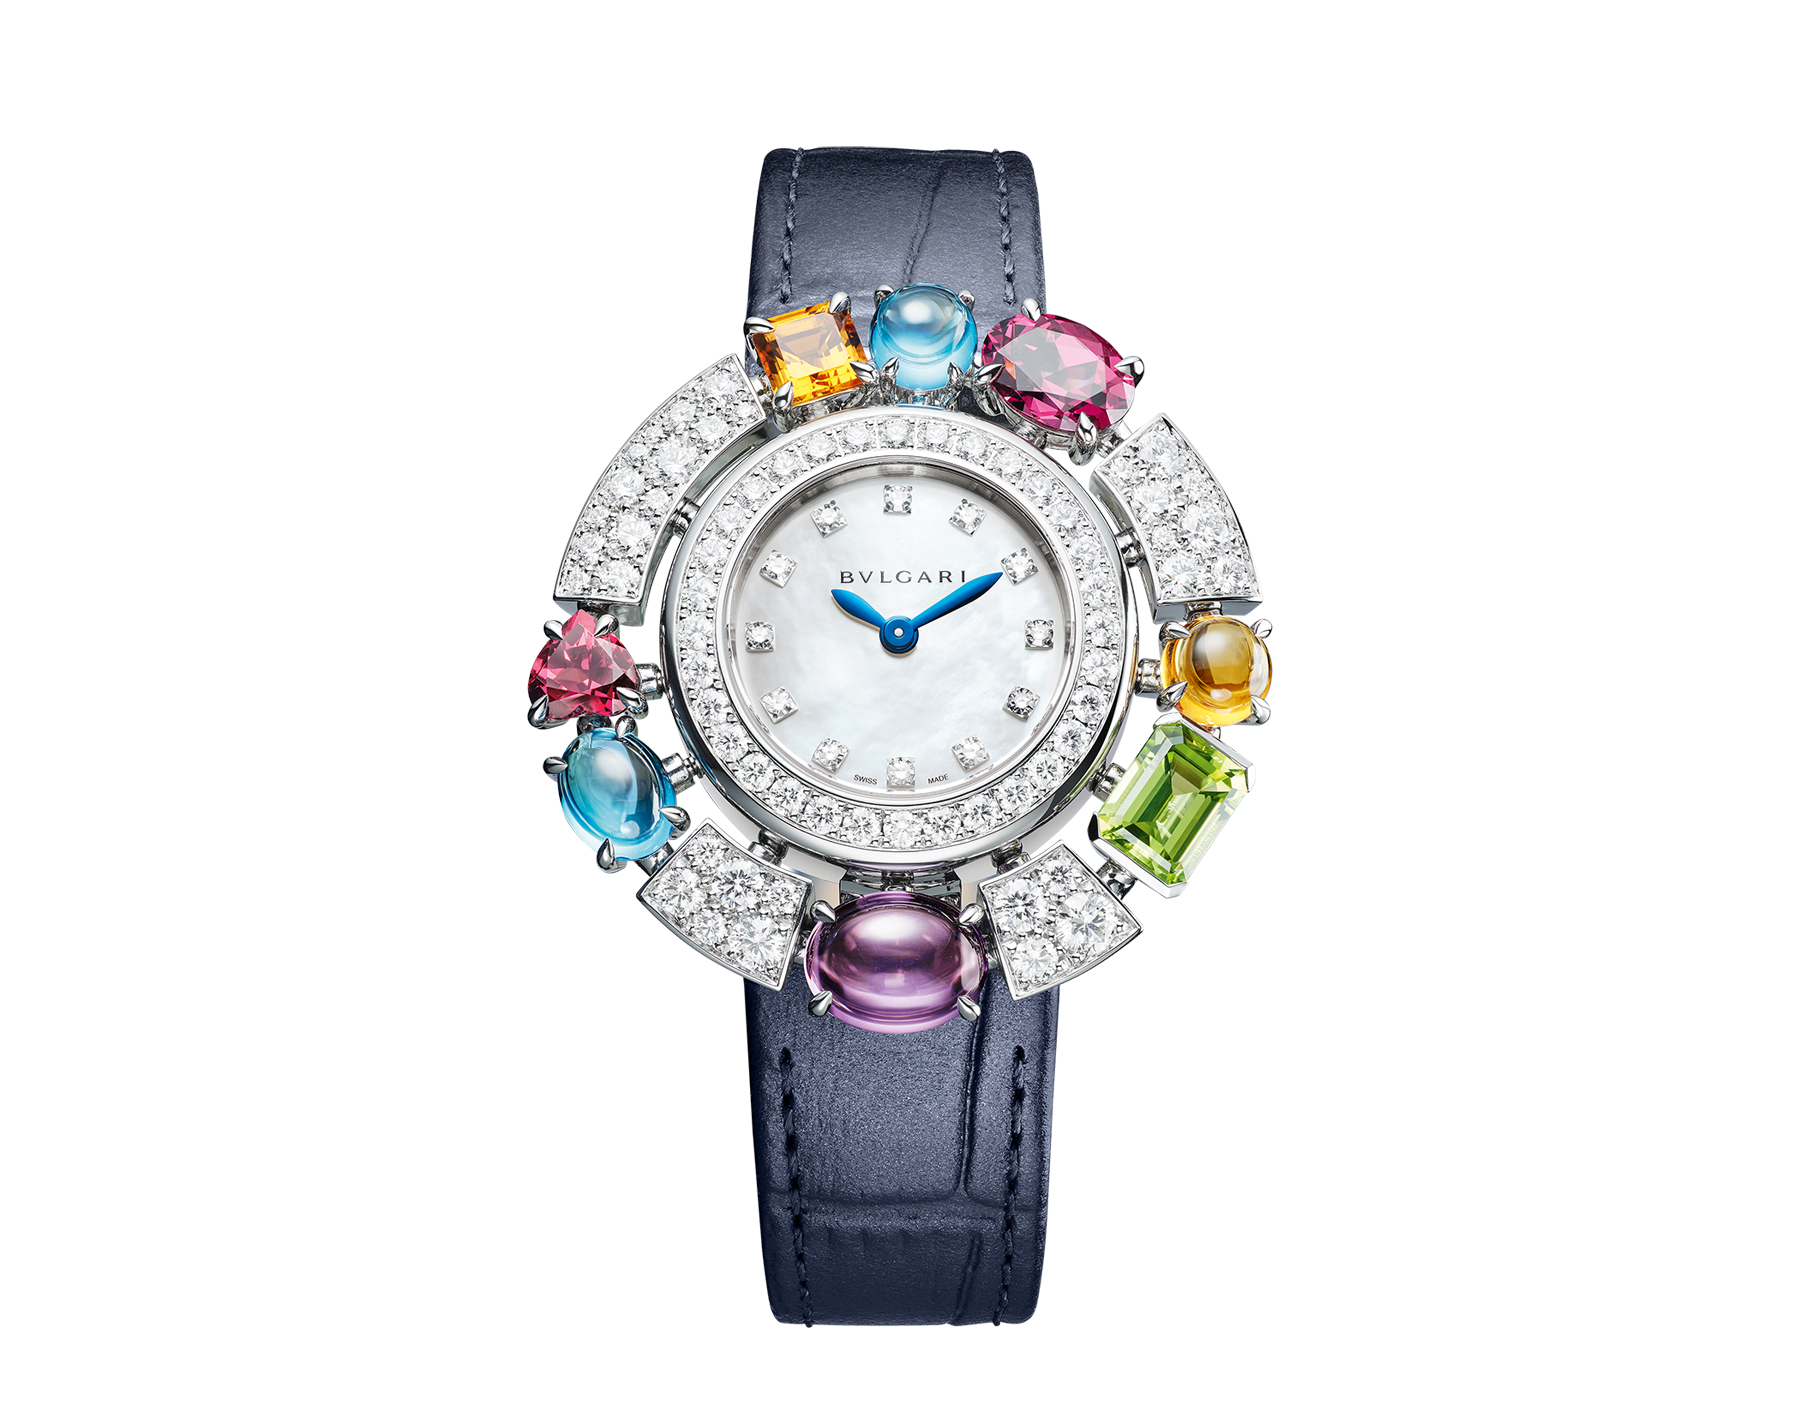 Allegra High Jewellery watch with 18 kt white gold case set with brilliant-cut diamonds, two citrines, an amethyst, a peridot, two blue topazes and two rhodolite, mother-of-pearl dial, diamond indexes and blue alligator bracelet. Water resistant up to 30 metres 103499 image 1